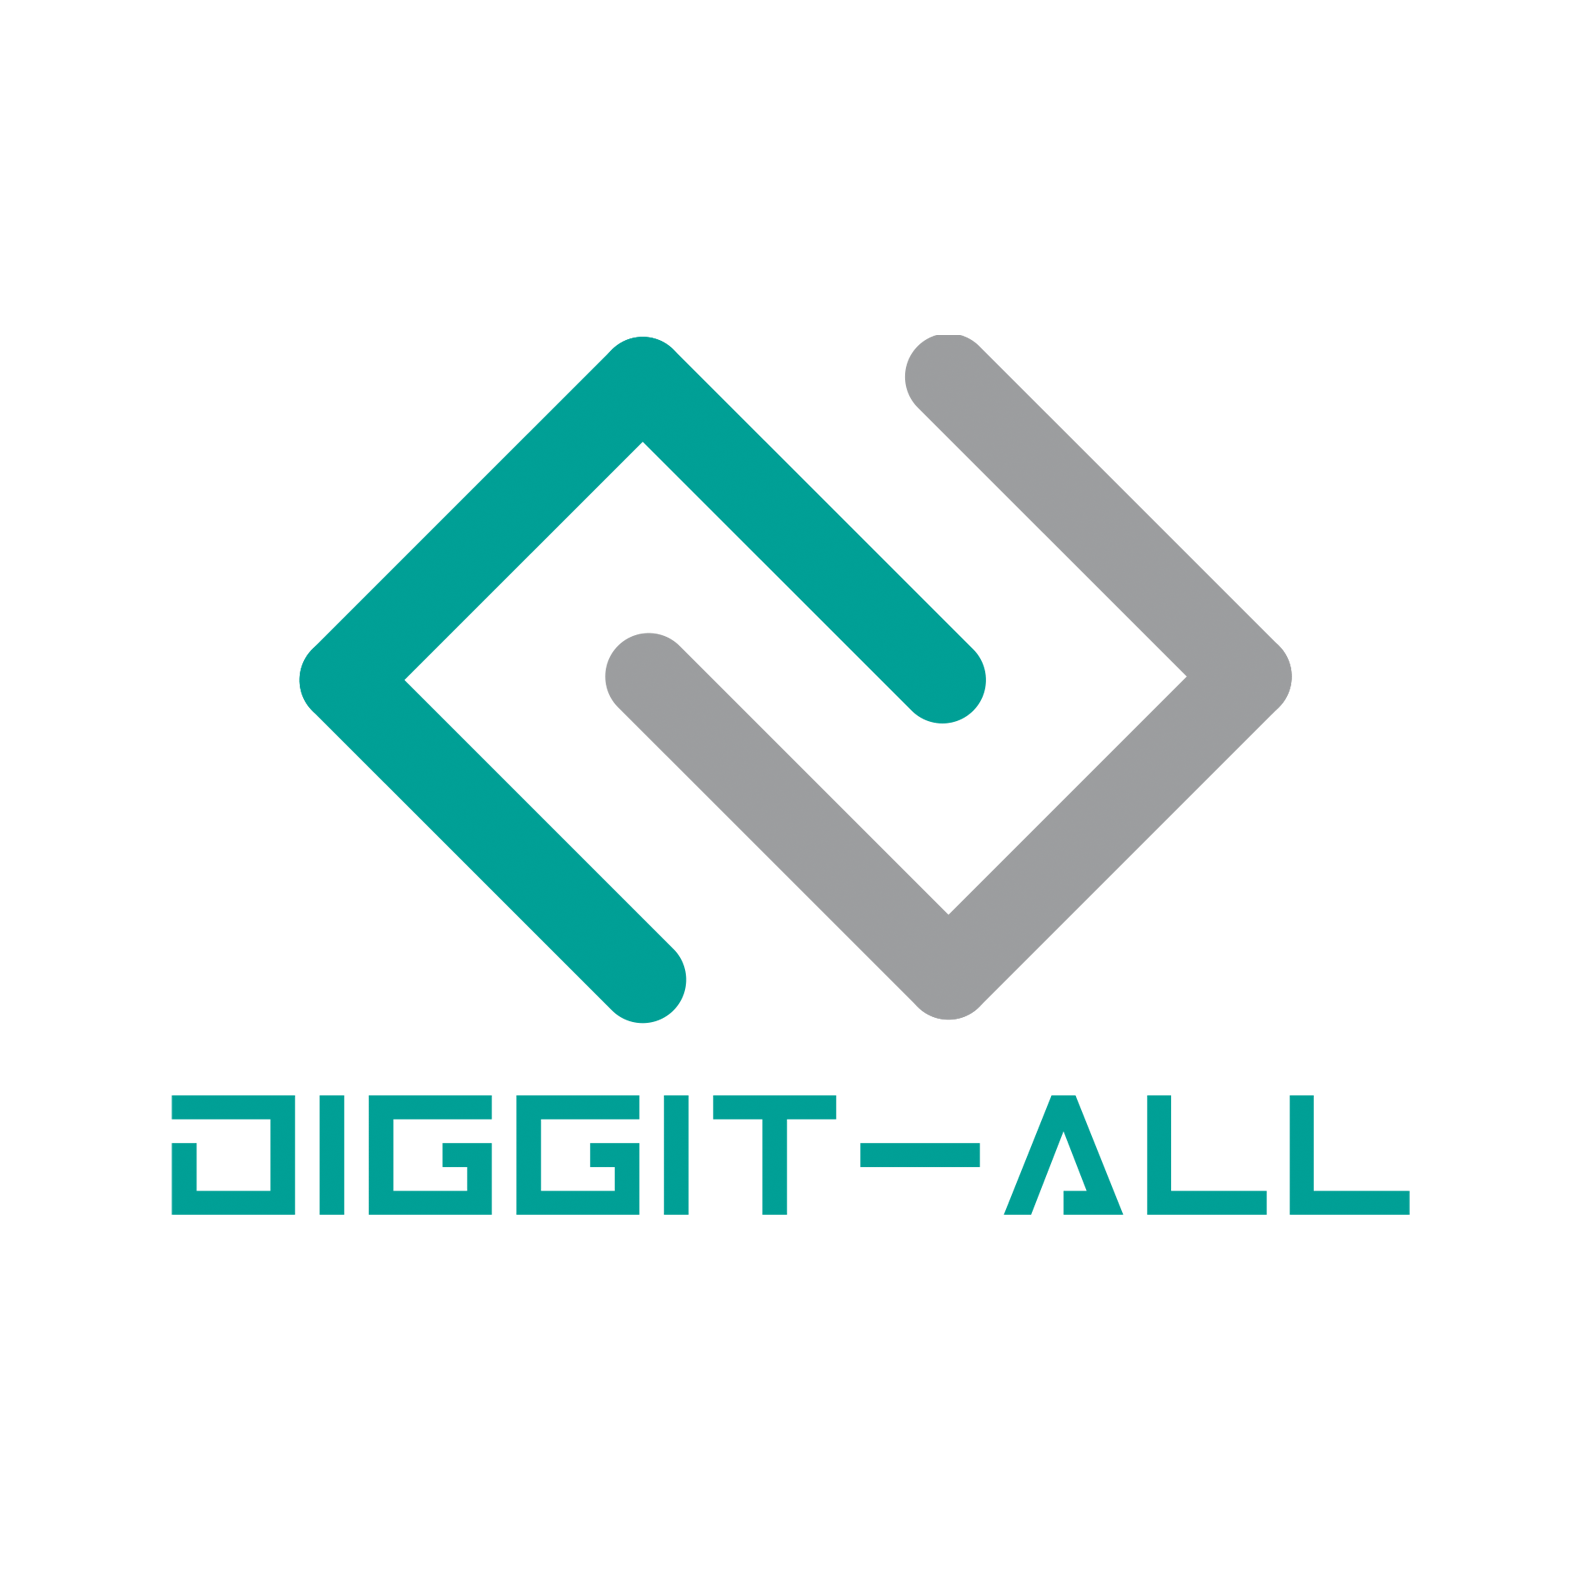 Diggit-all